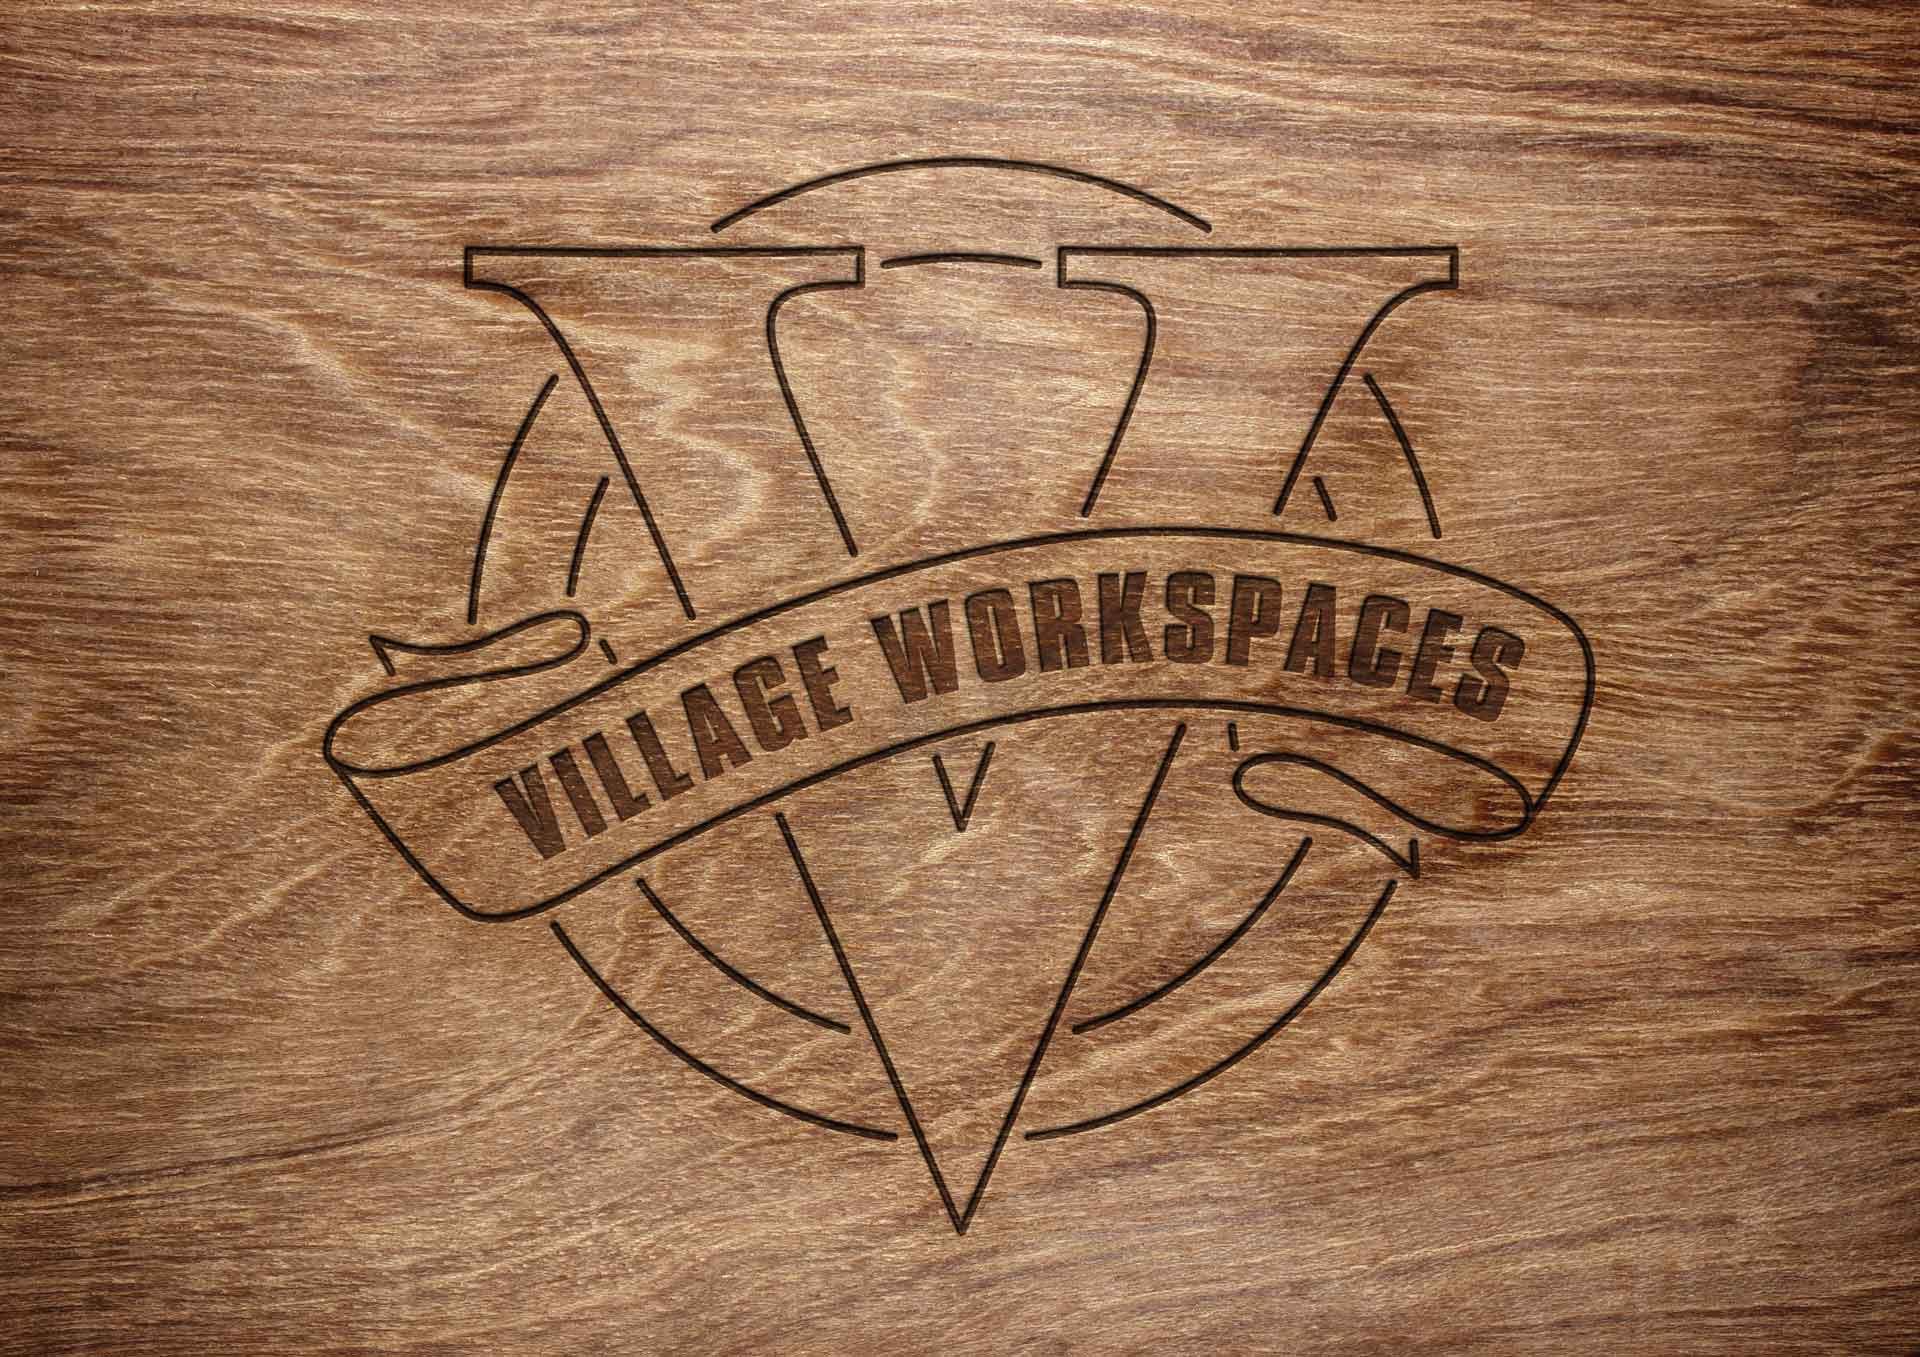 village-workspaces-logo-wood-engraving